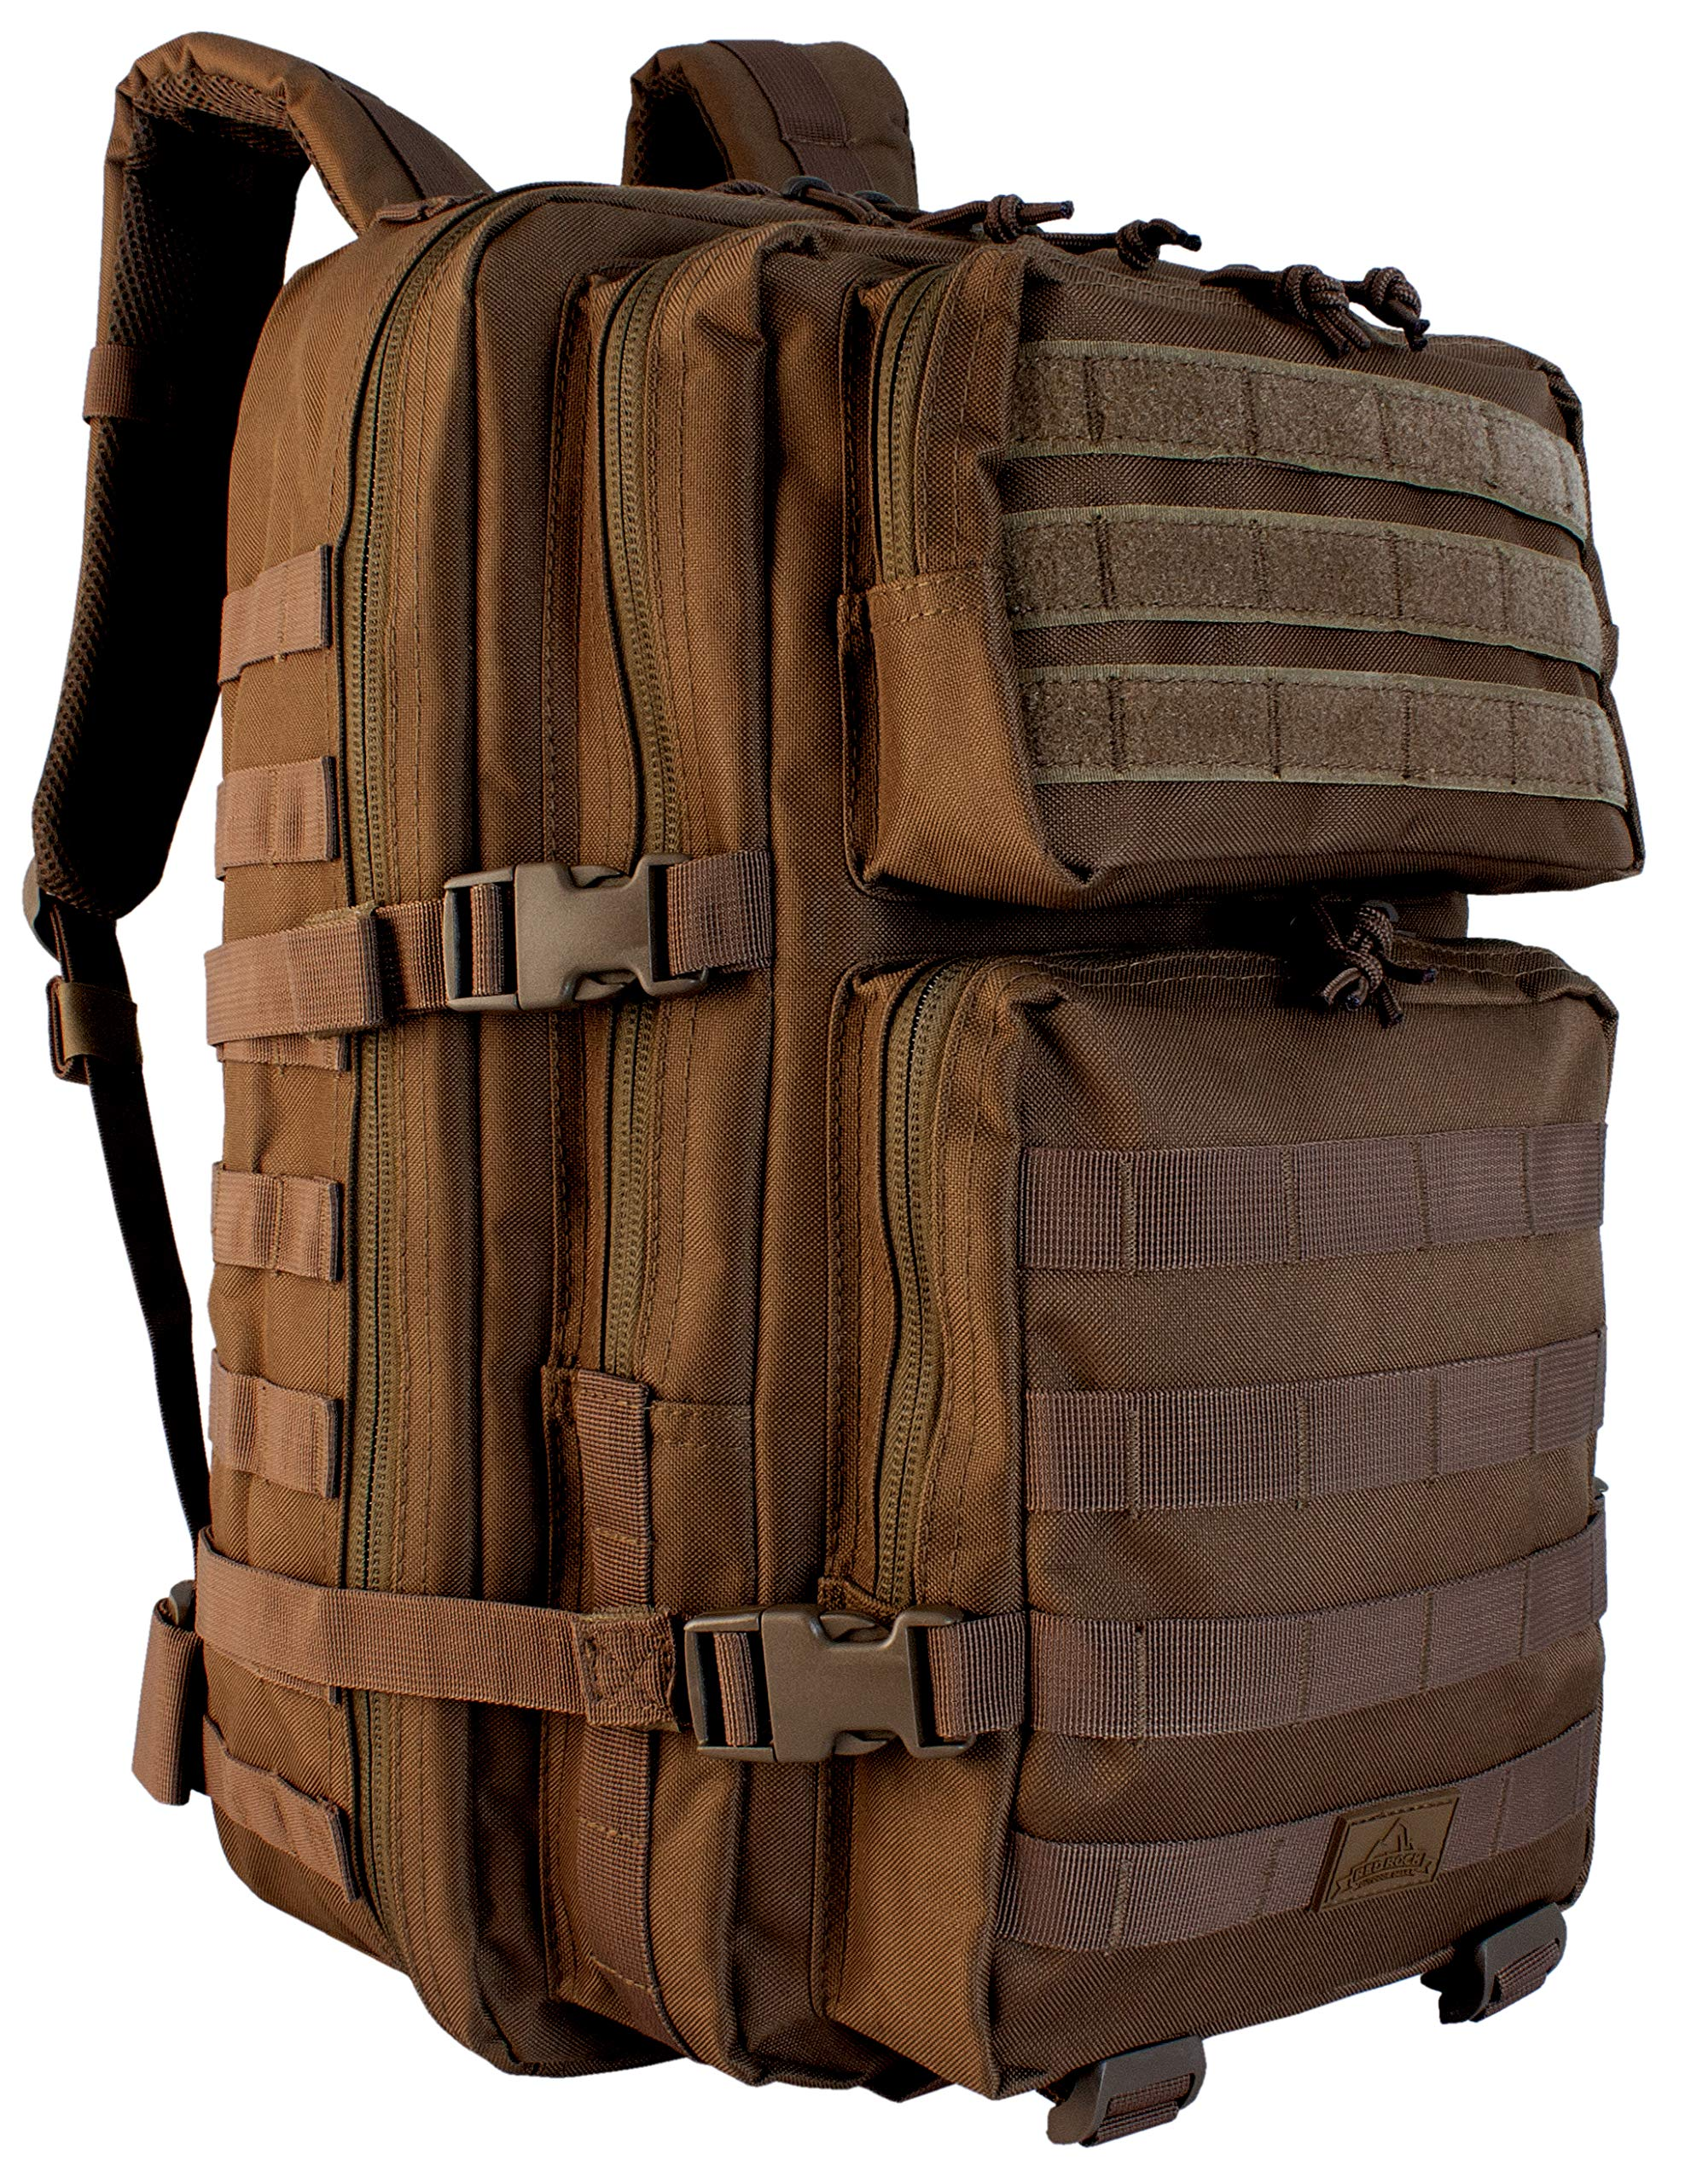 Red Rock Outdoor Gear - Large Assault Pack by Red Rock Outdoor Gear